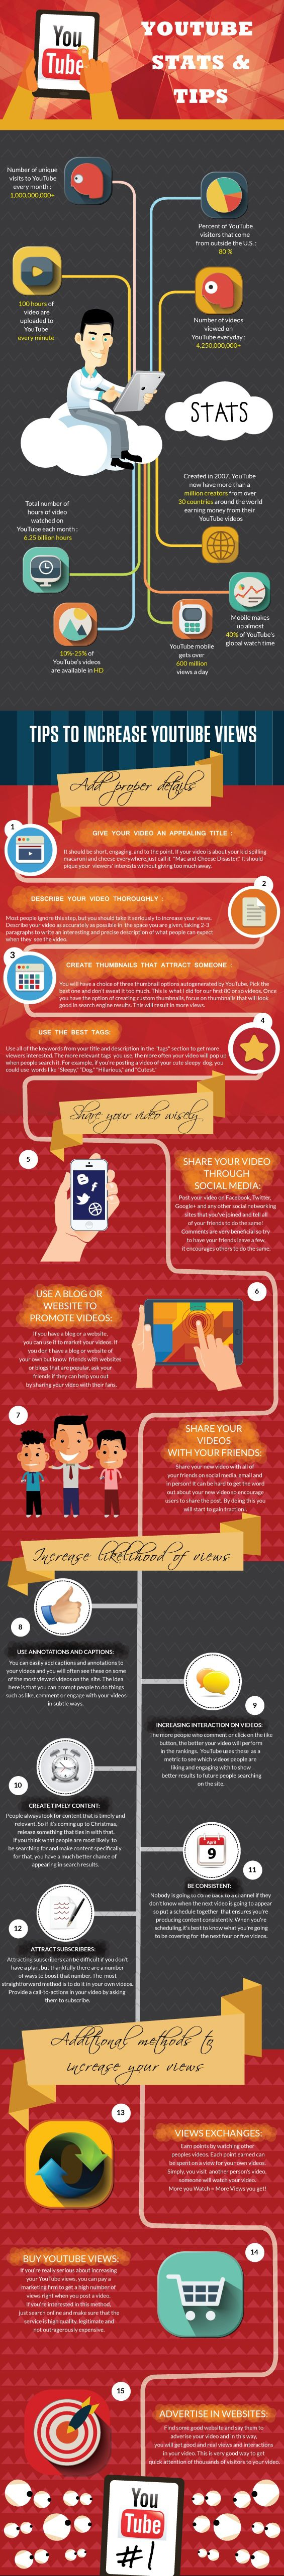 YouTube Stats and tips #infographic